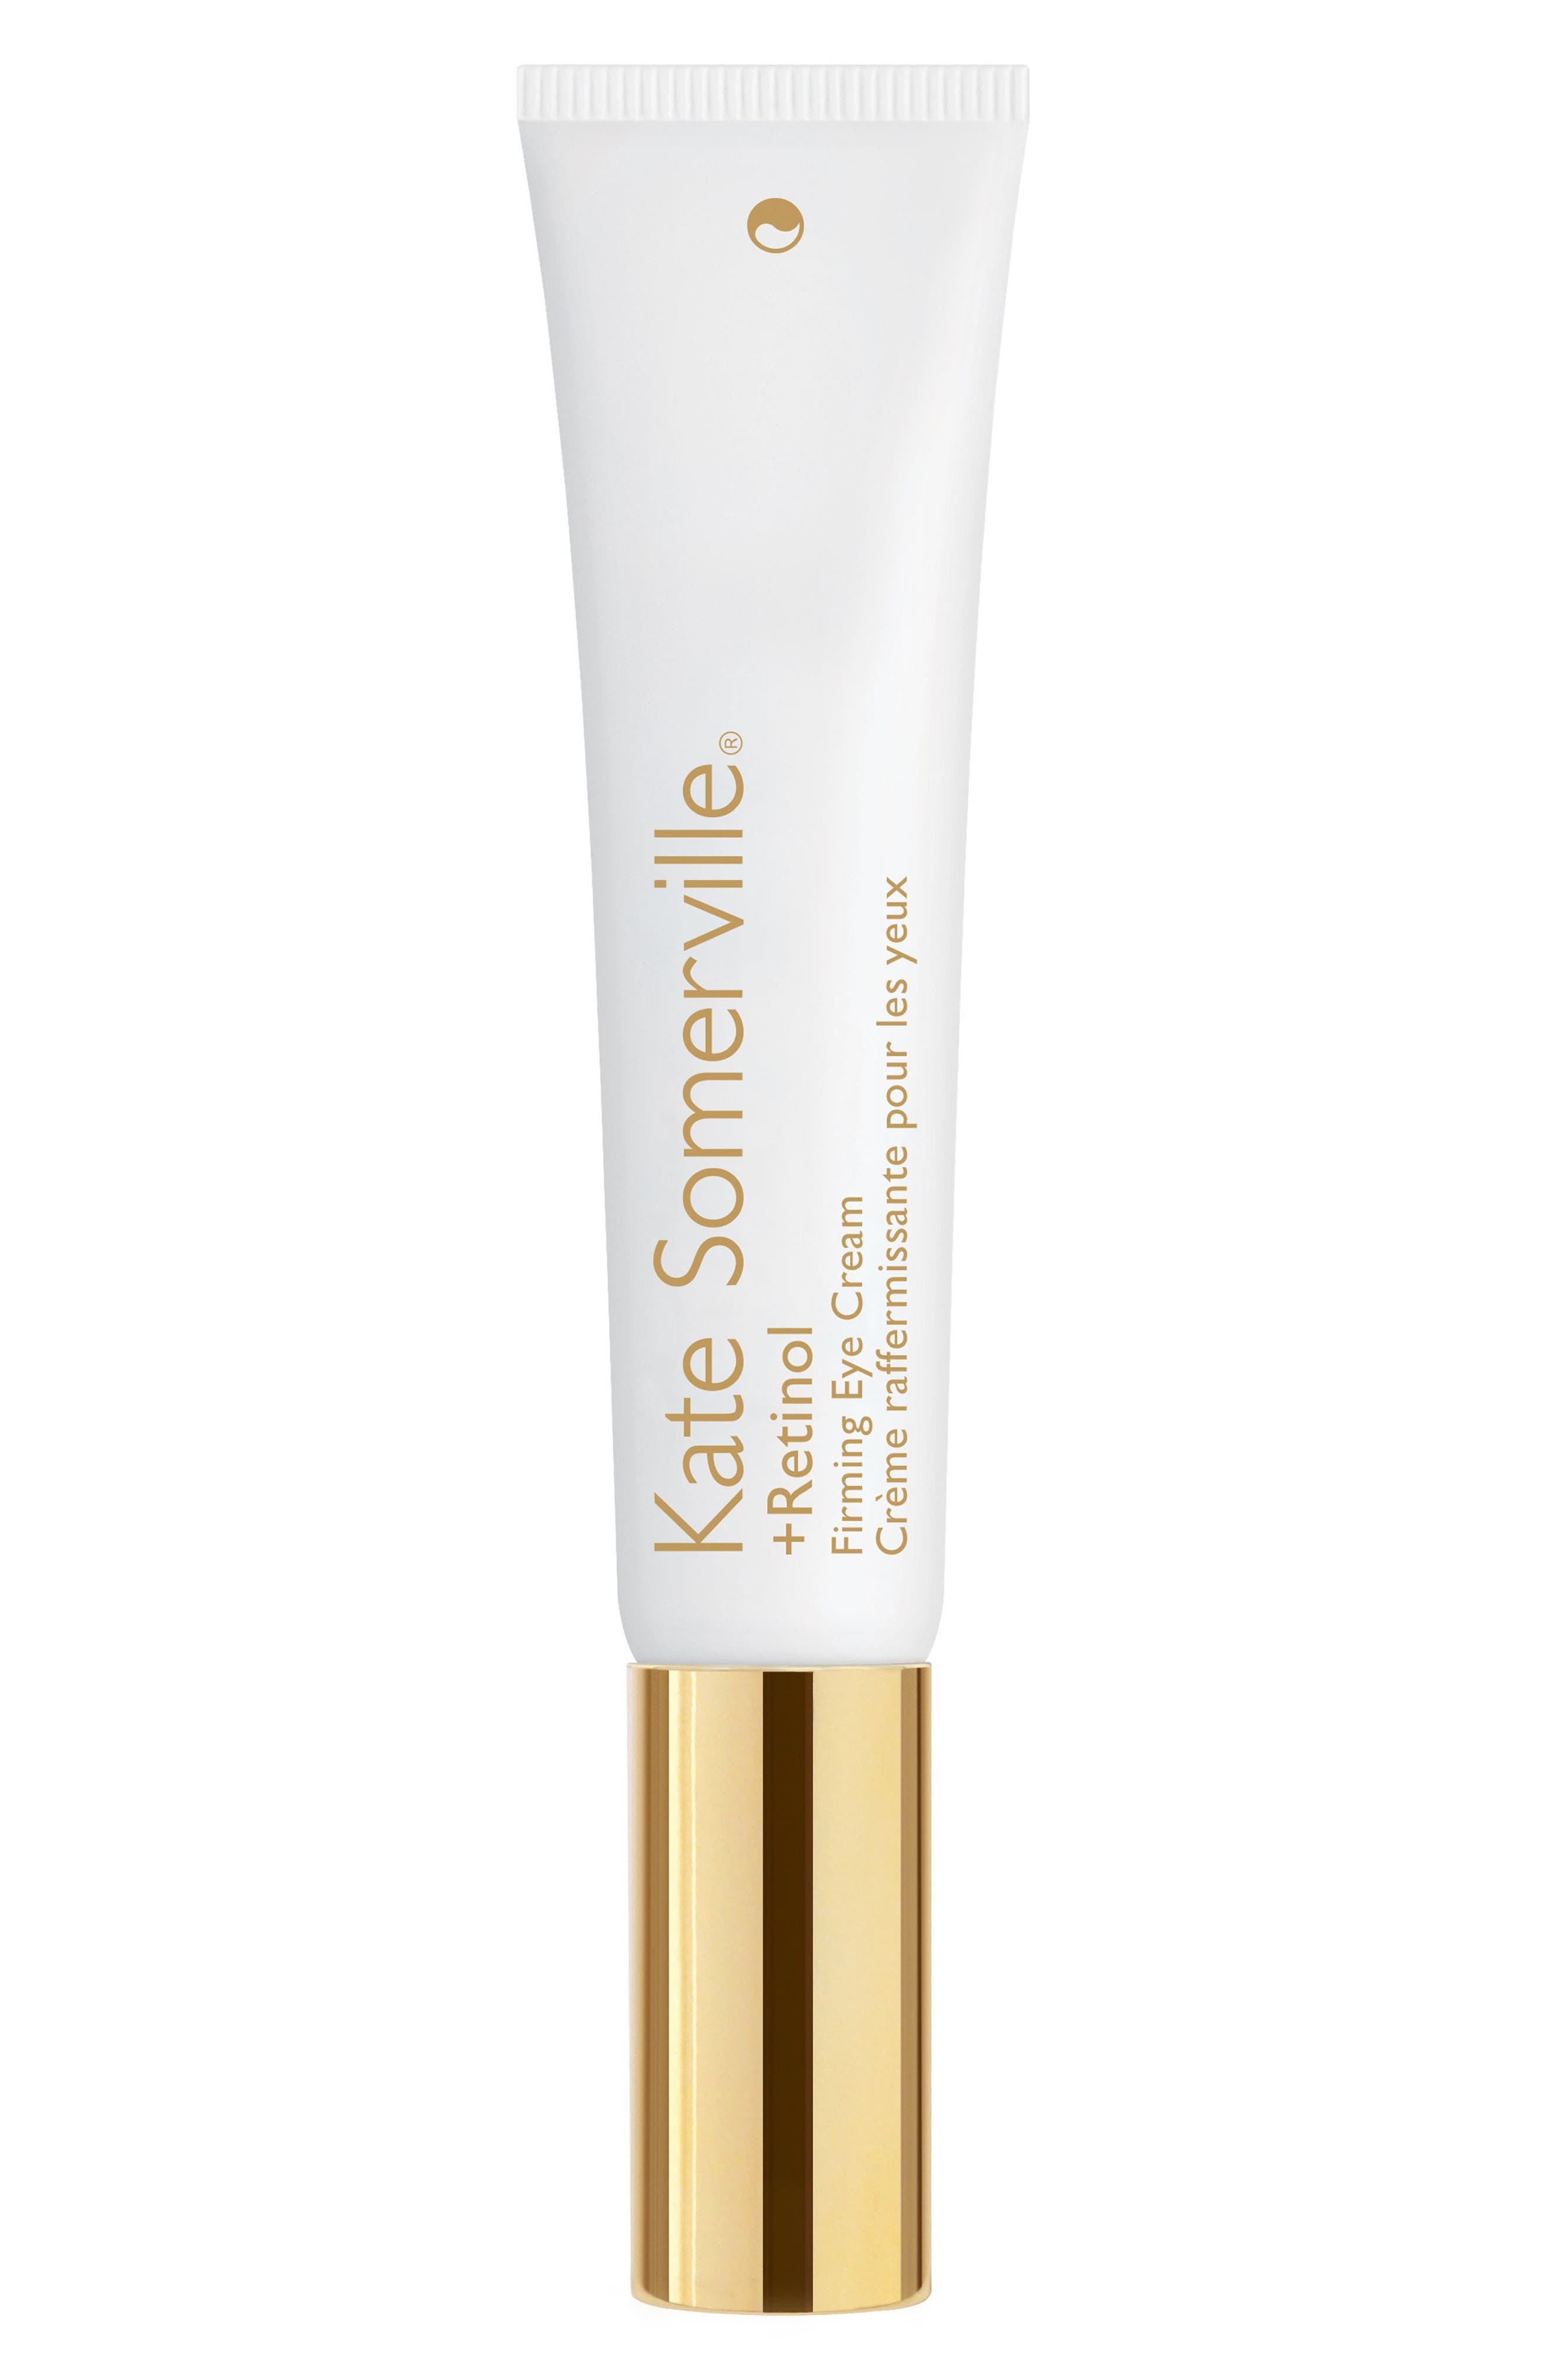 Kate Somerville® +Retinol Firming Eye Cream